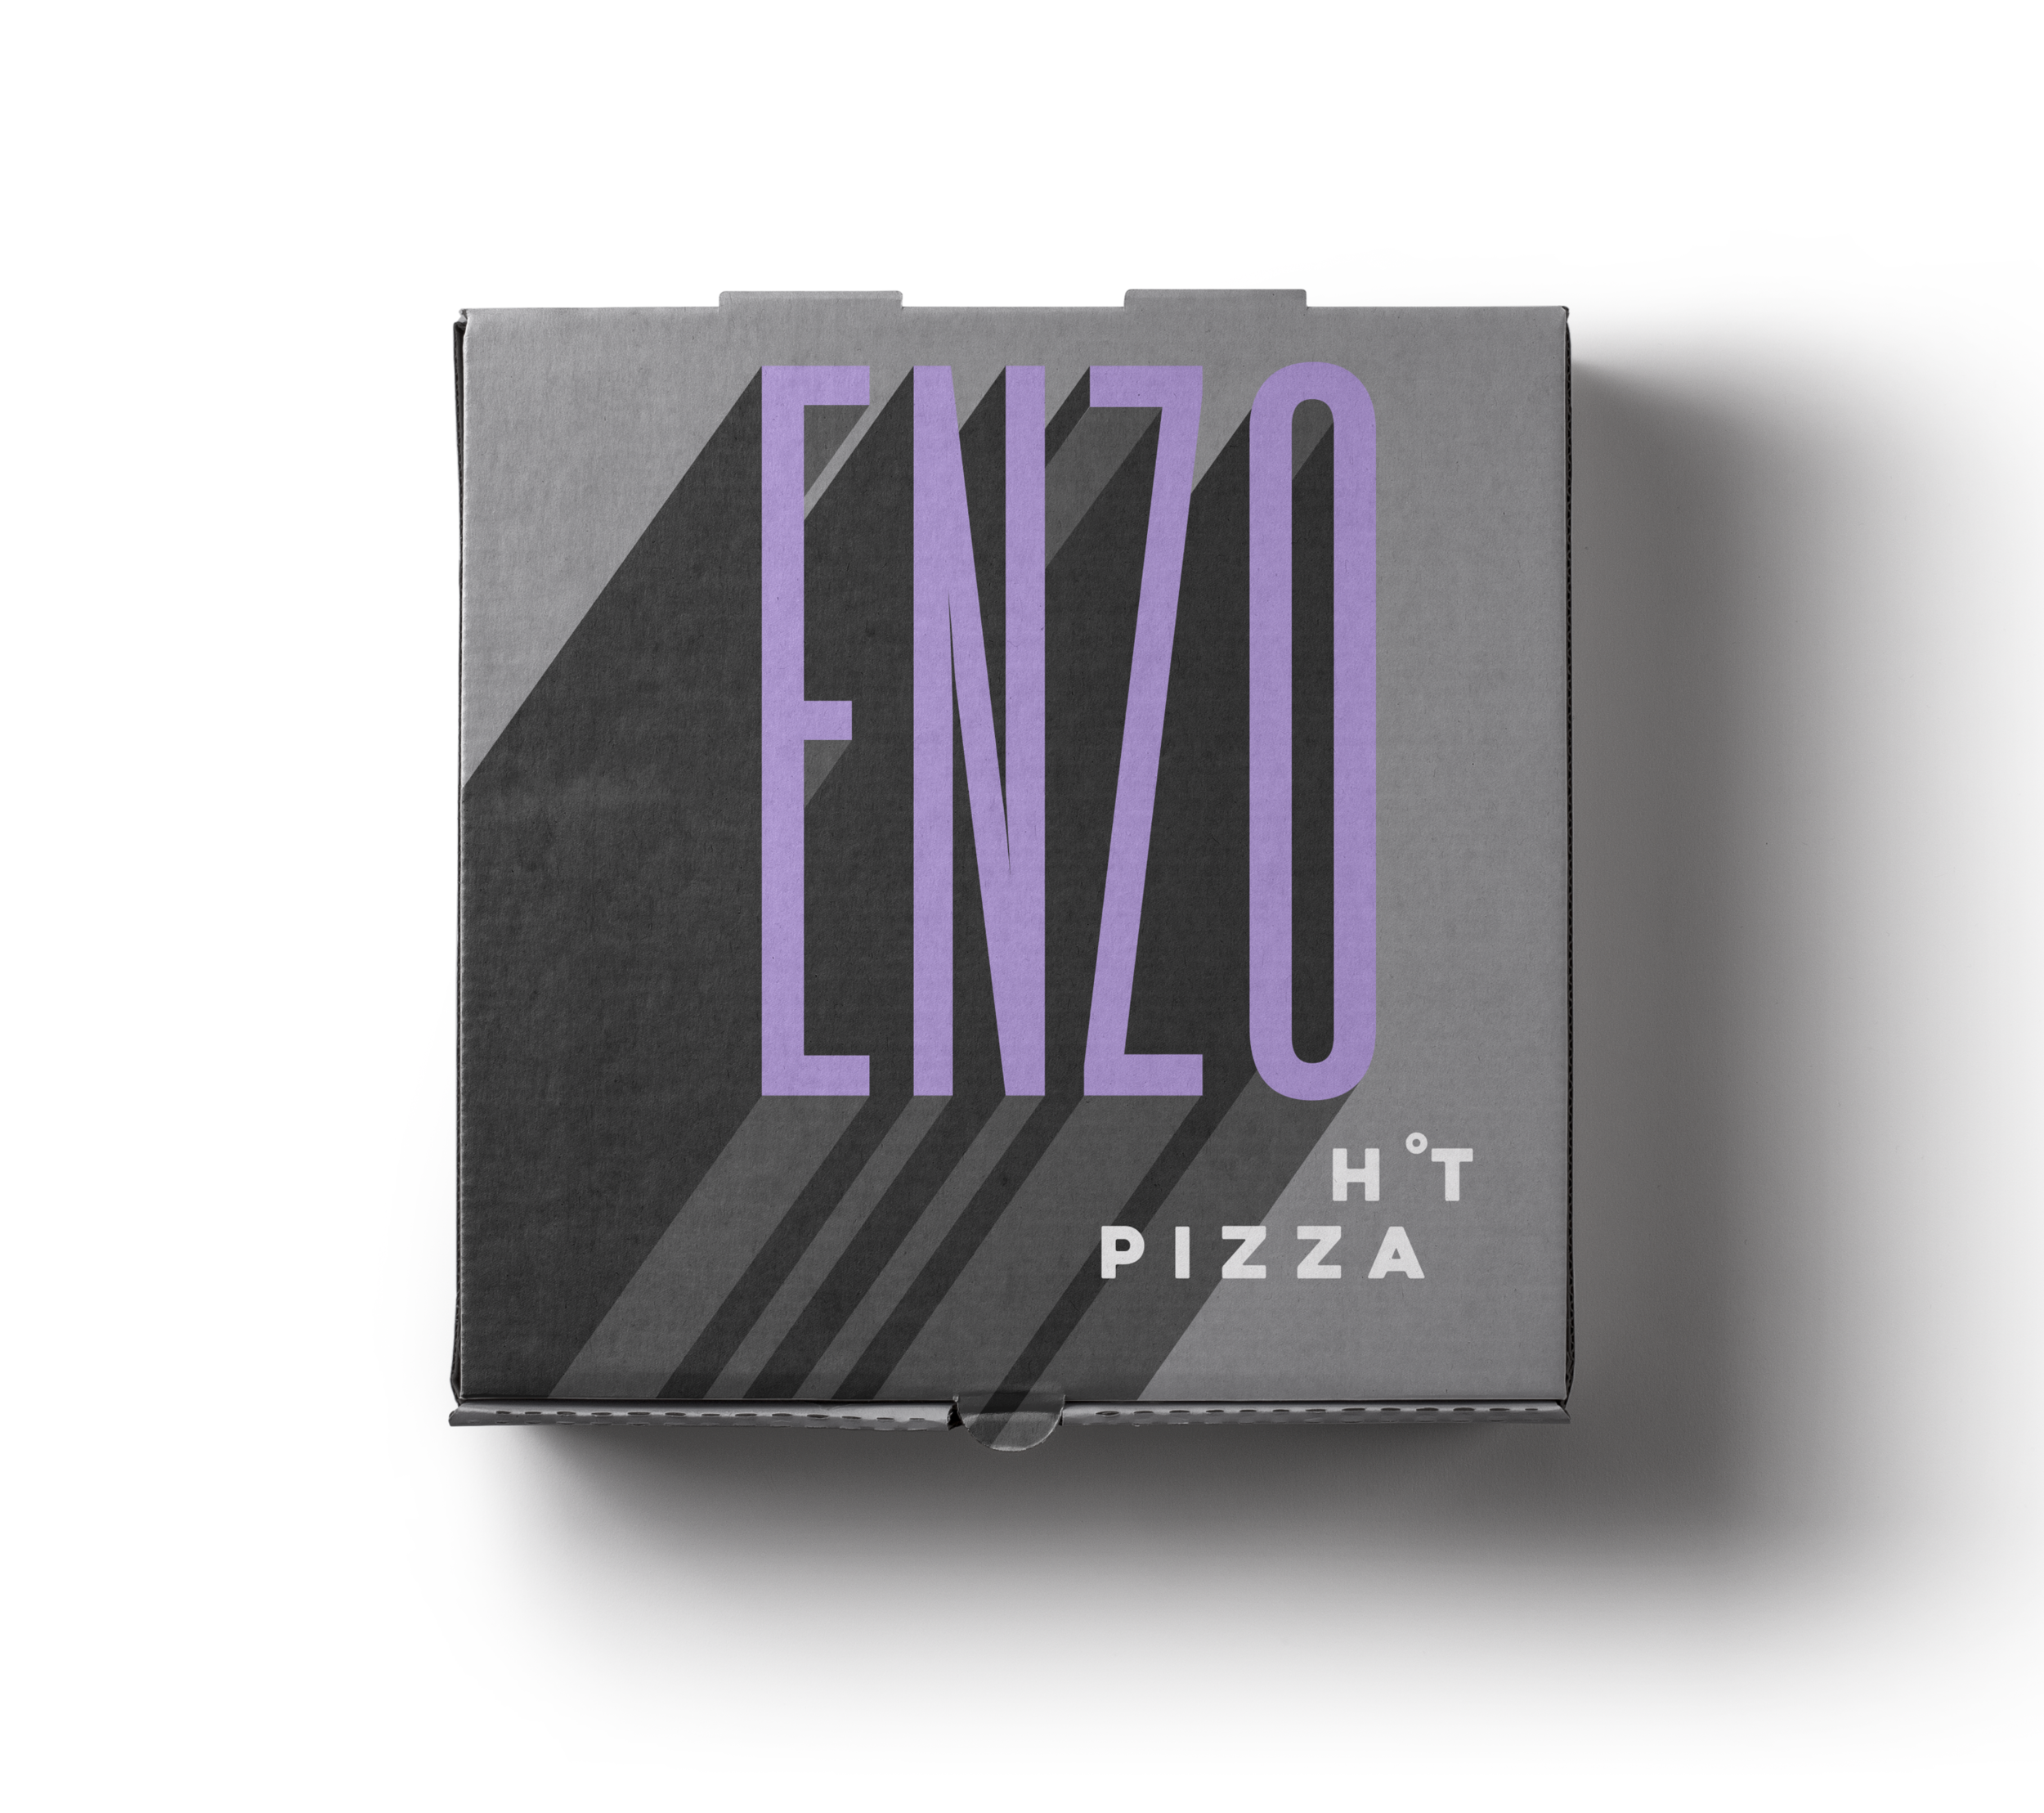 candybrophycreative - Enzo Hot Pizza Branding8.png